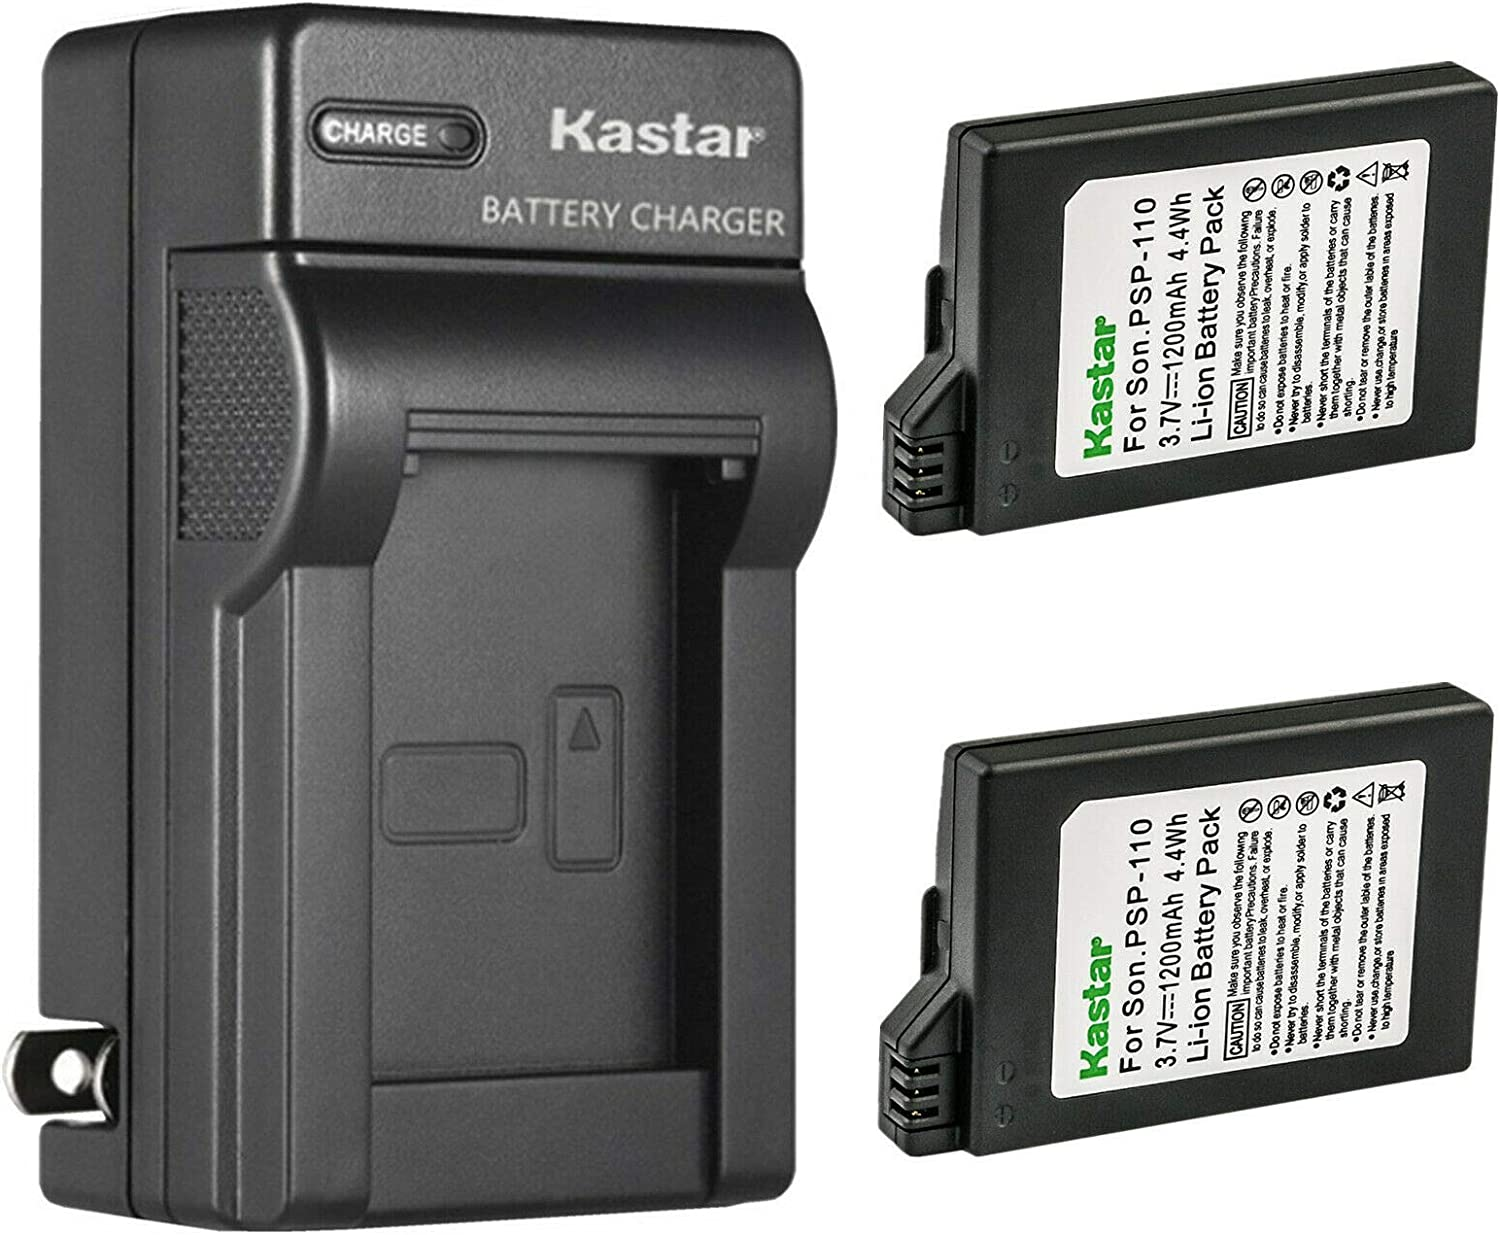 Kastar shop 2-Pack Battery Miami Mall and AC Wall Sony Charger P Replacement for